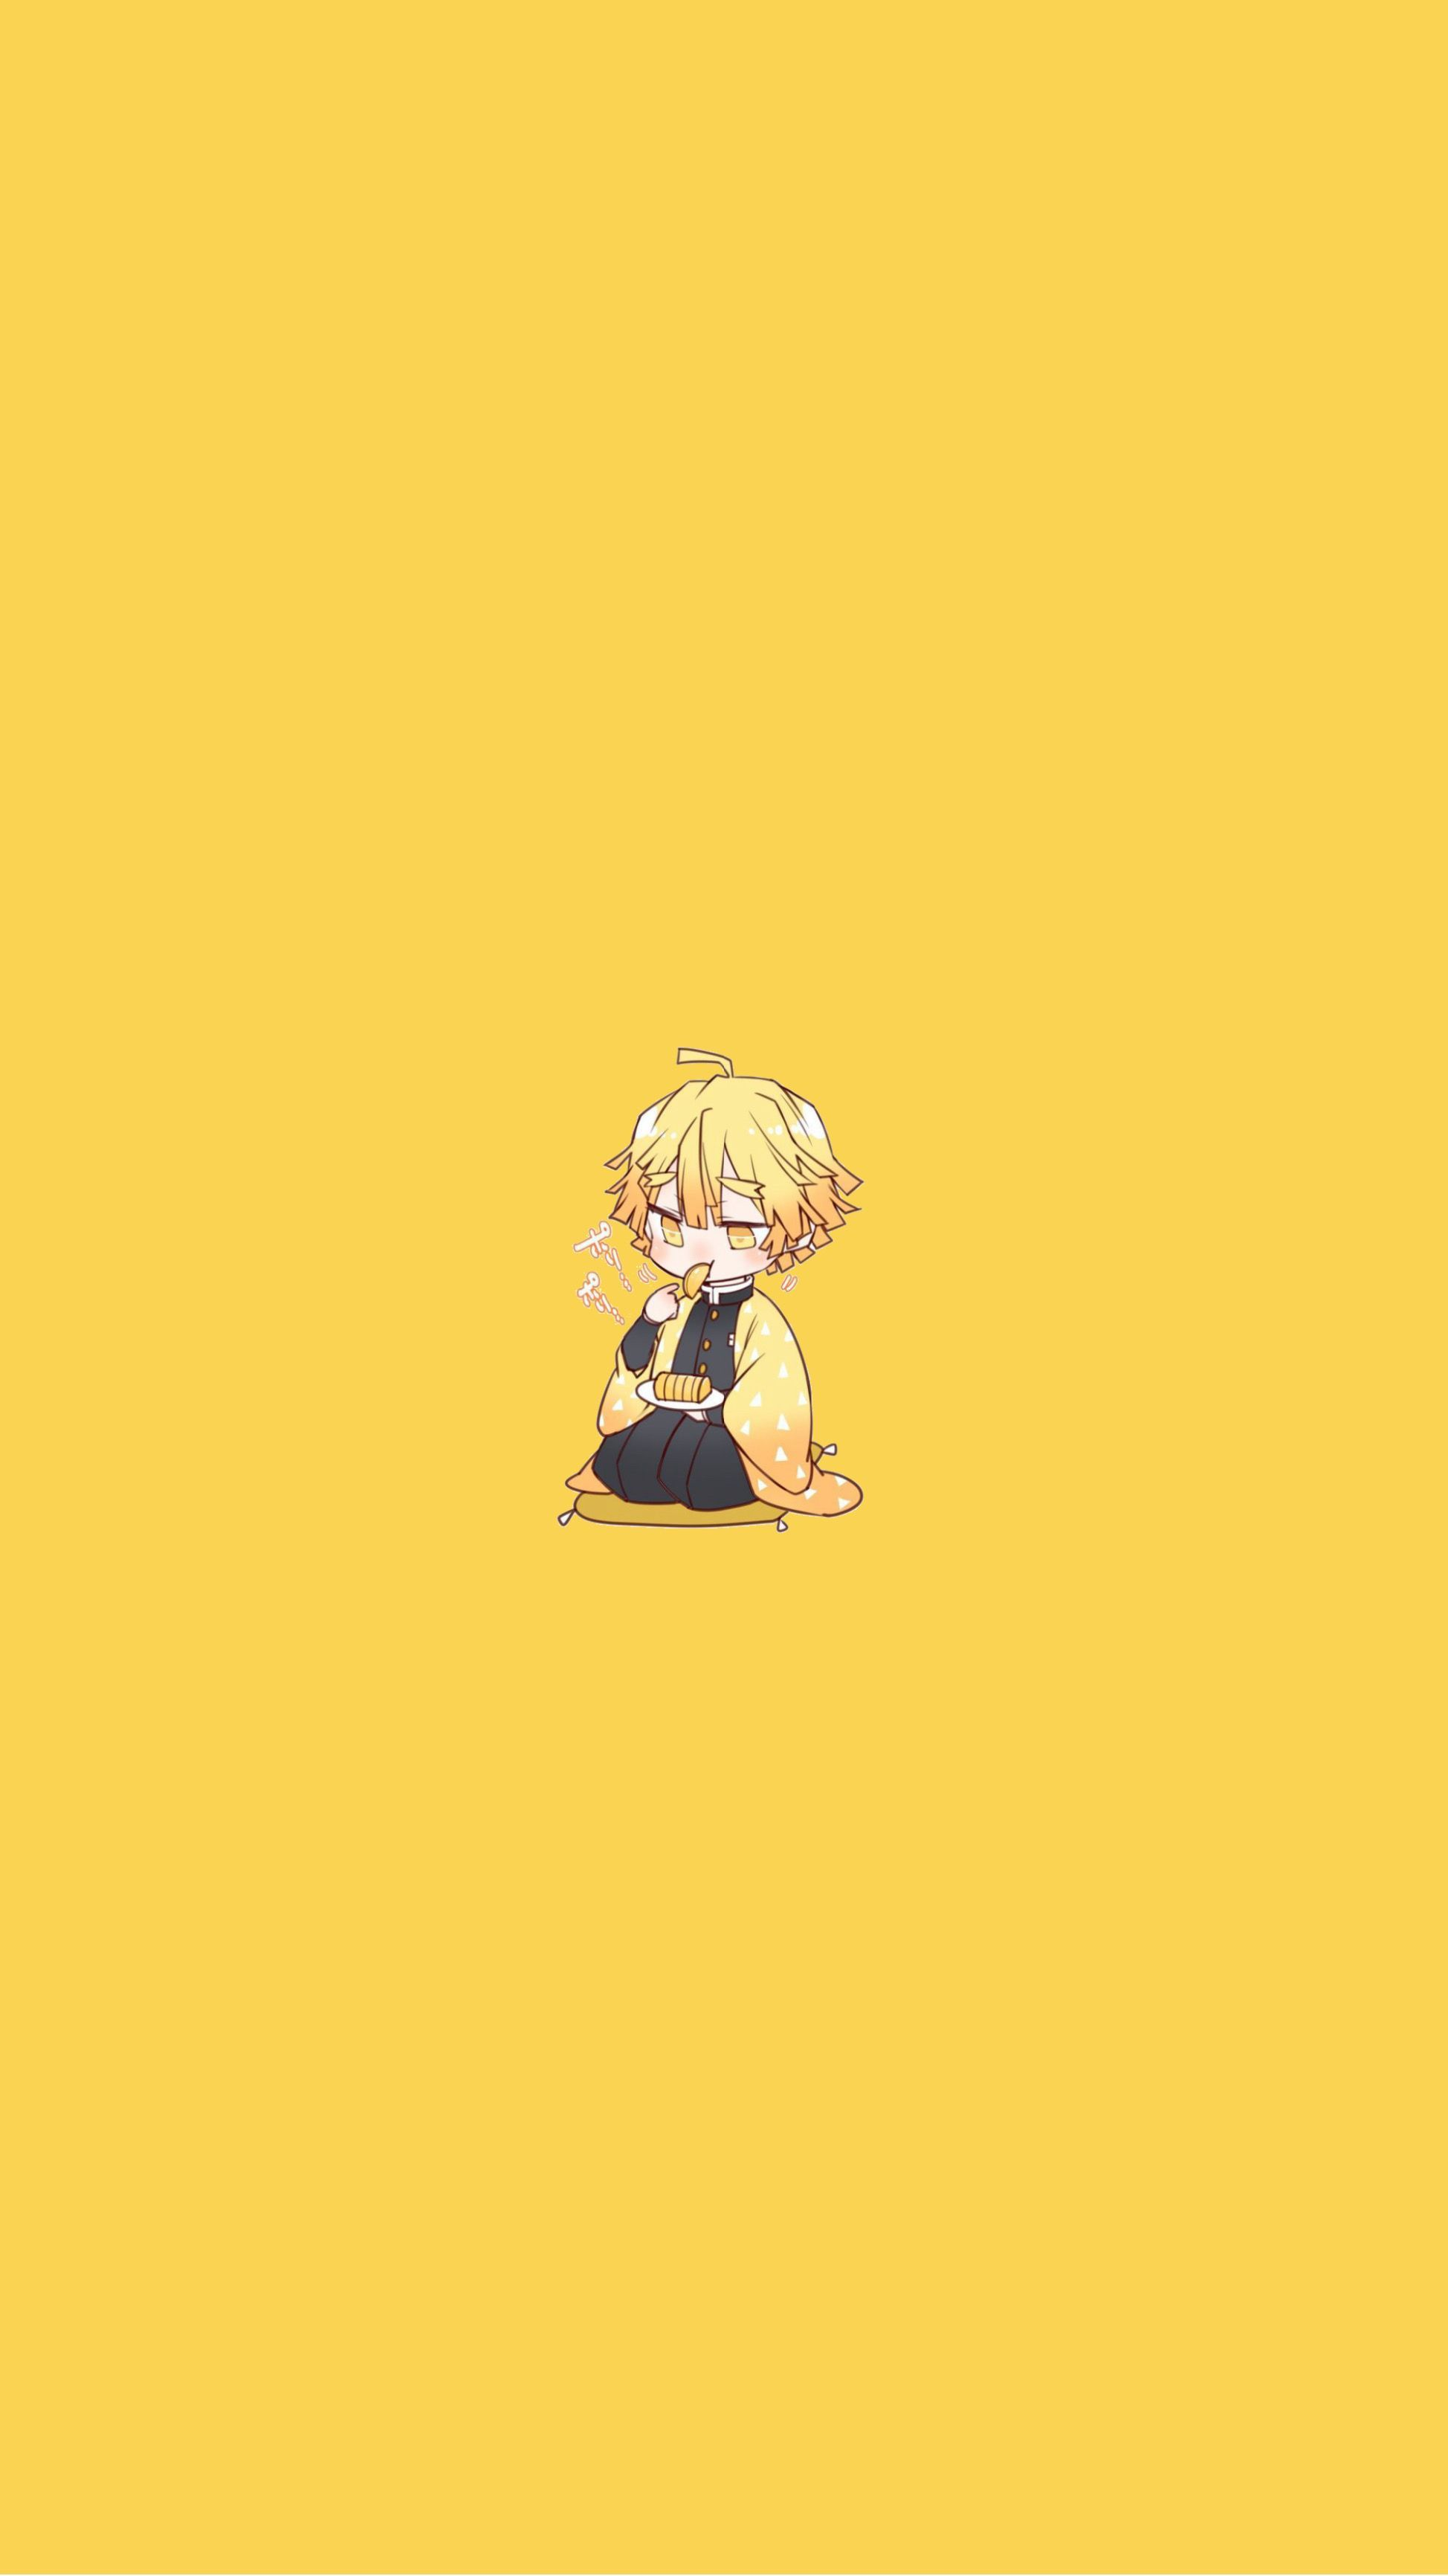 Anime Yellow : anime, yellow, Yellow, Aesthetic, Anime, Wallpapers, Wallpaper